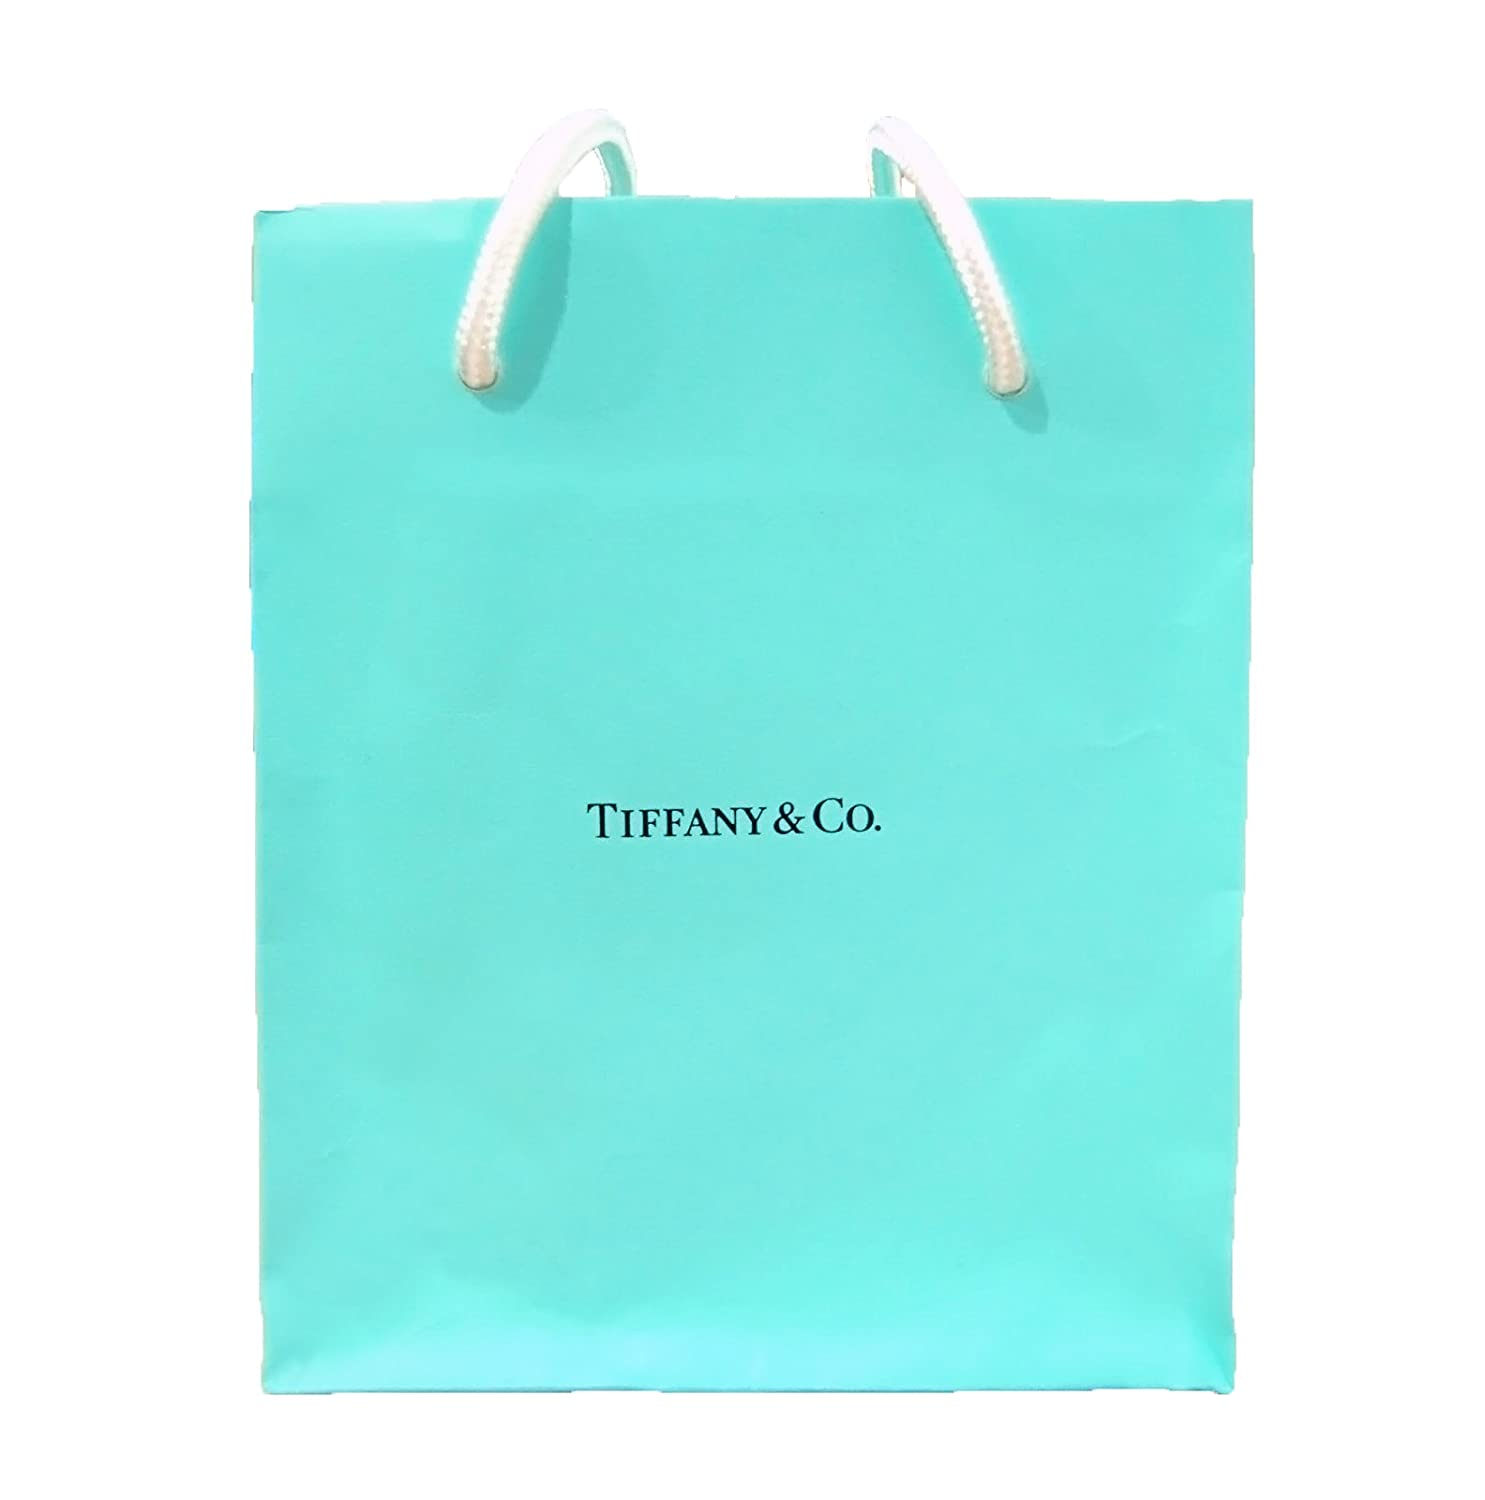 Amazon.com: Authentic Tiffany & Co. Small Gift Bag 6x5x3: Health ...